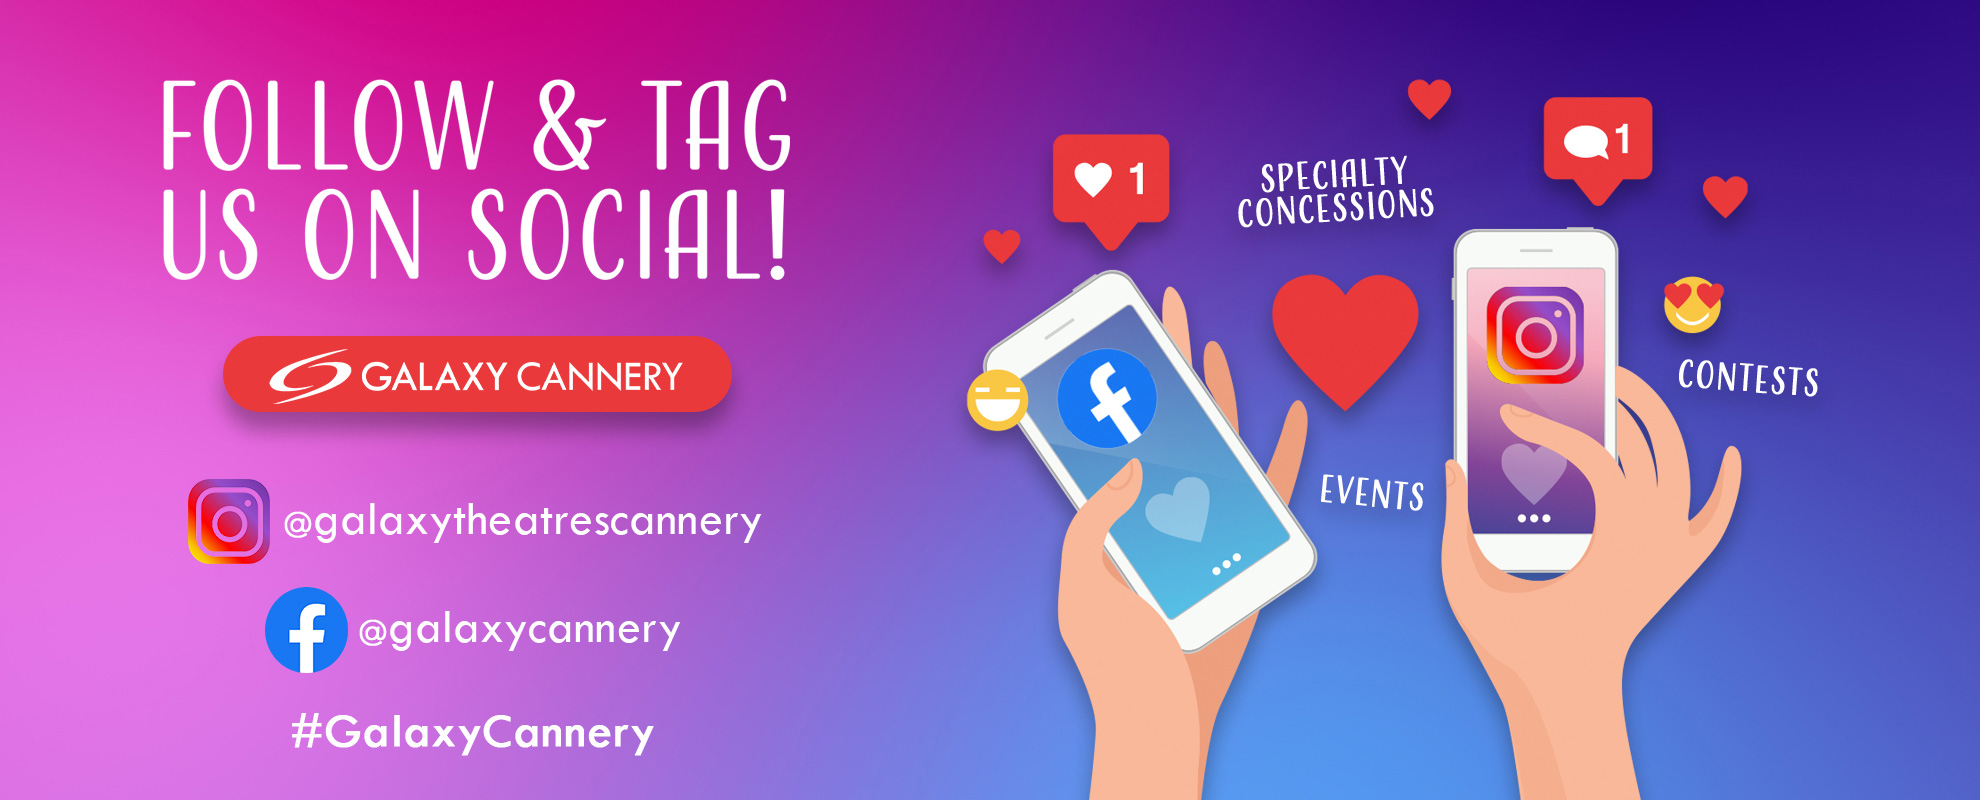 Socials/Hashtag - Cannery image